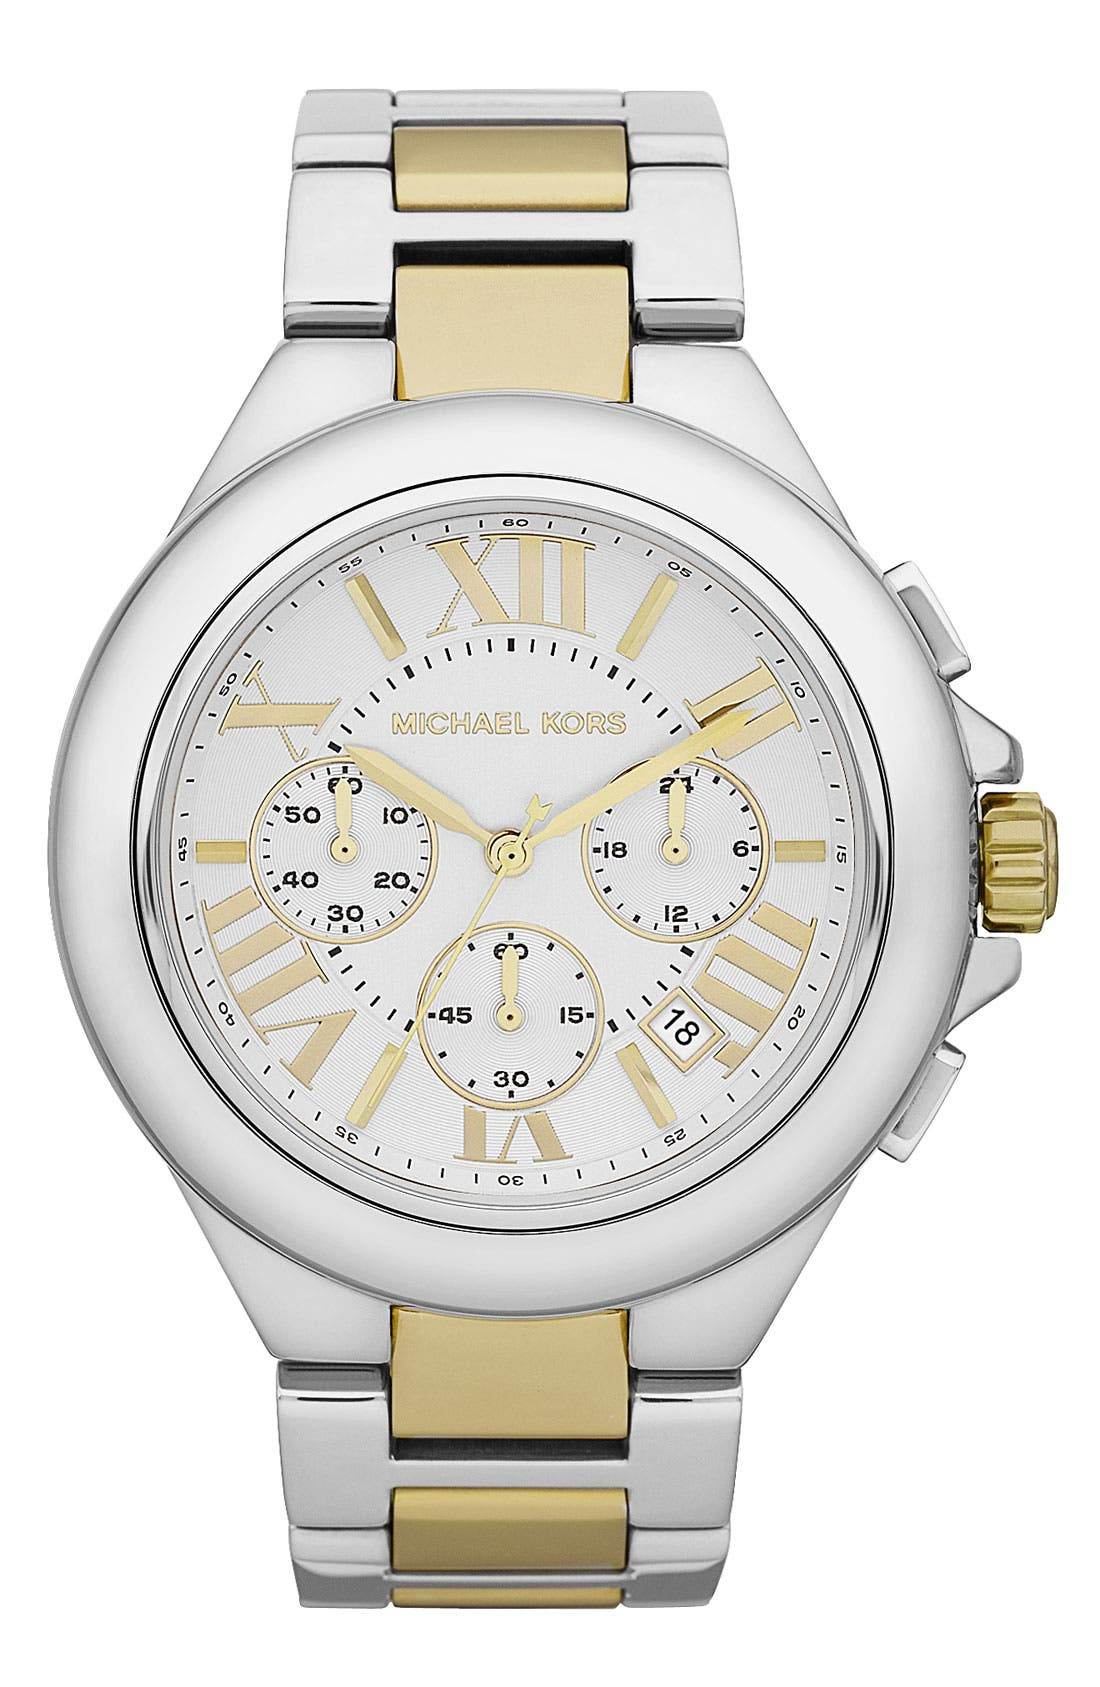 Main Image - Michael Kors 'Camille' Chronograph Bracelet Watch, 43mm